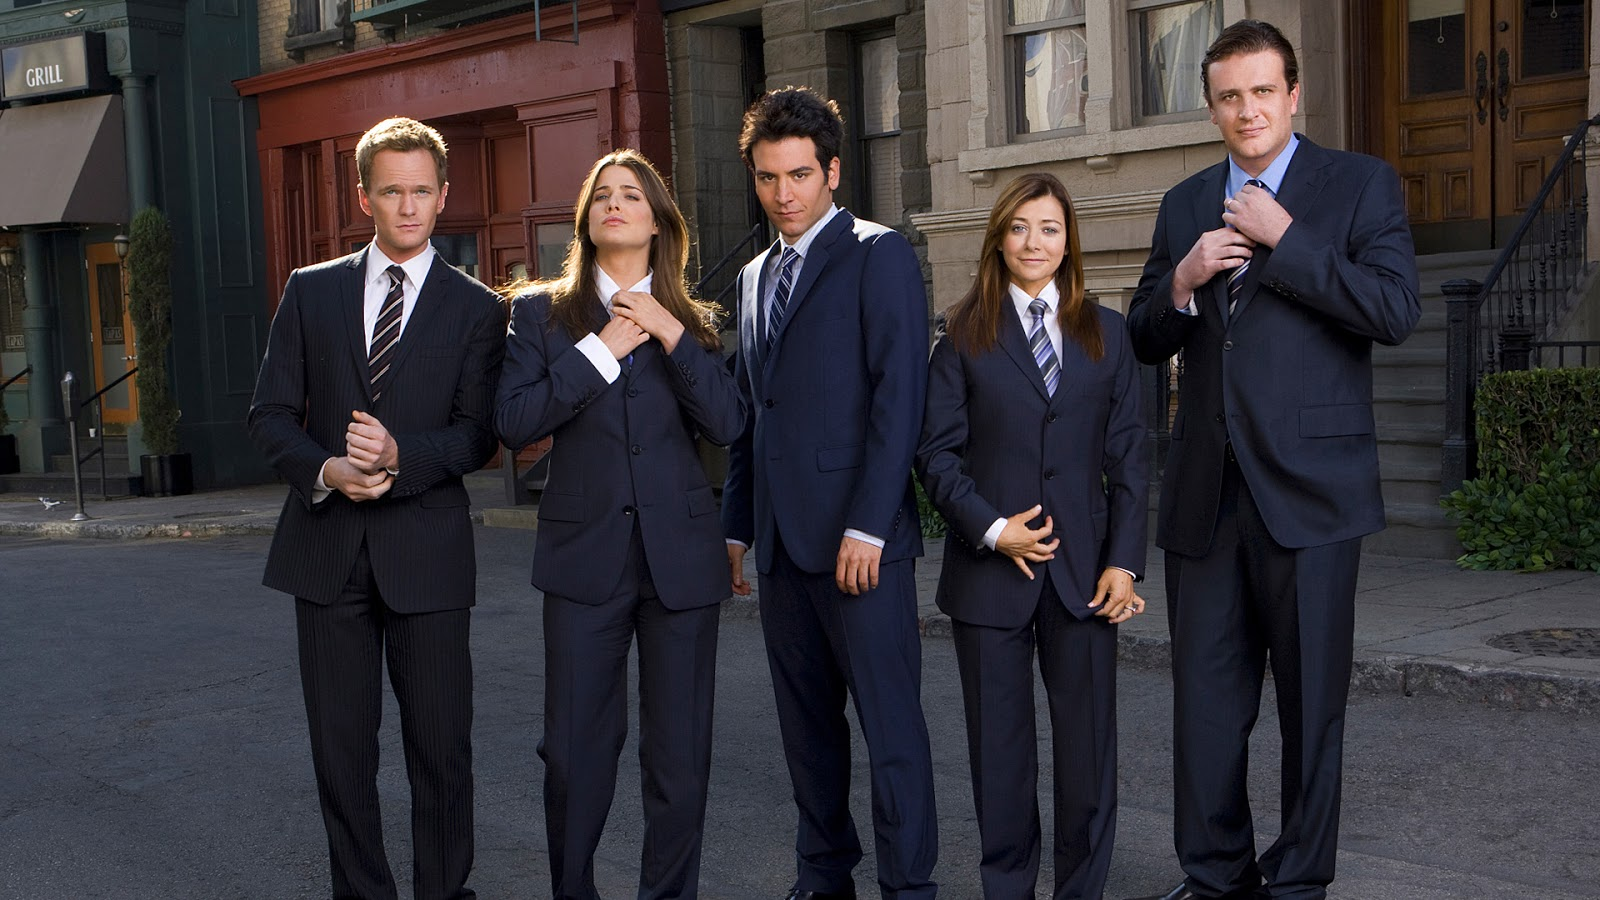 Sweet allure 8 Things I Learnt From Re-Watching How I Met Your Mother.  tv film netflix opinions